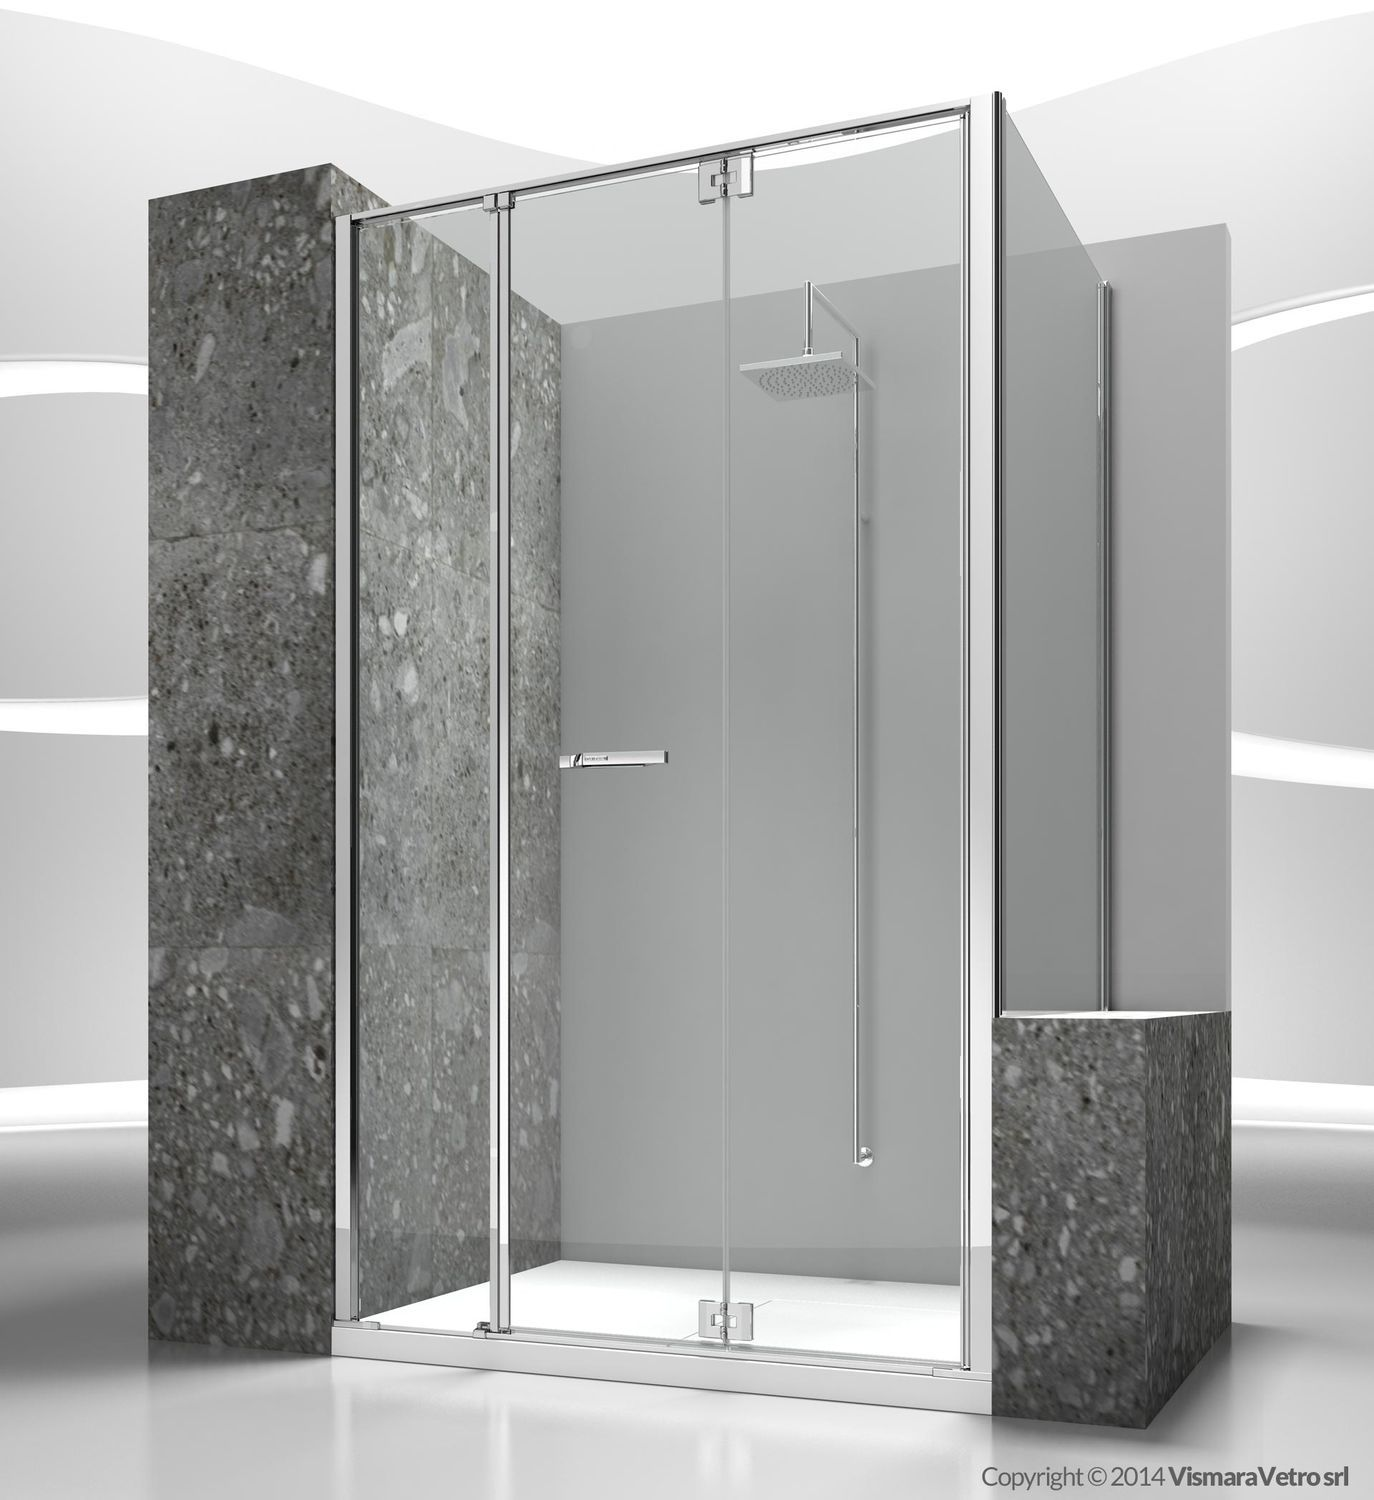 Glass shower cubicle / corner / with folding door - REPLAY: RM+RV - Glass Shower Cubicle / Corner / With Folding Door - REPLAY: RM+RV